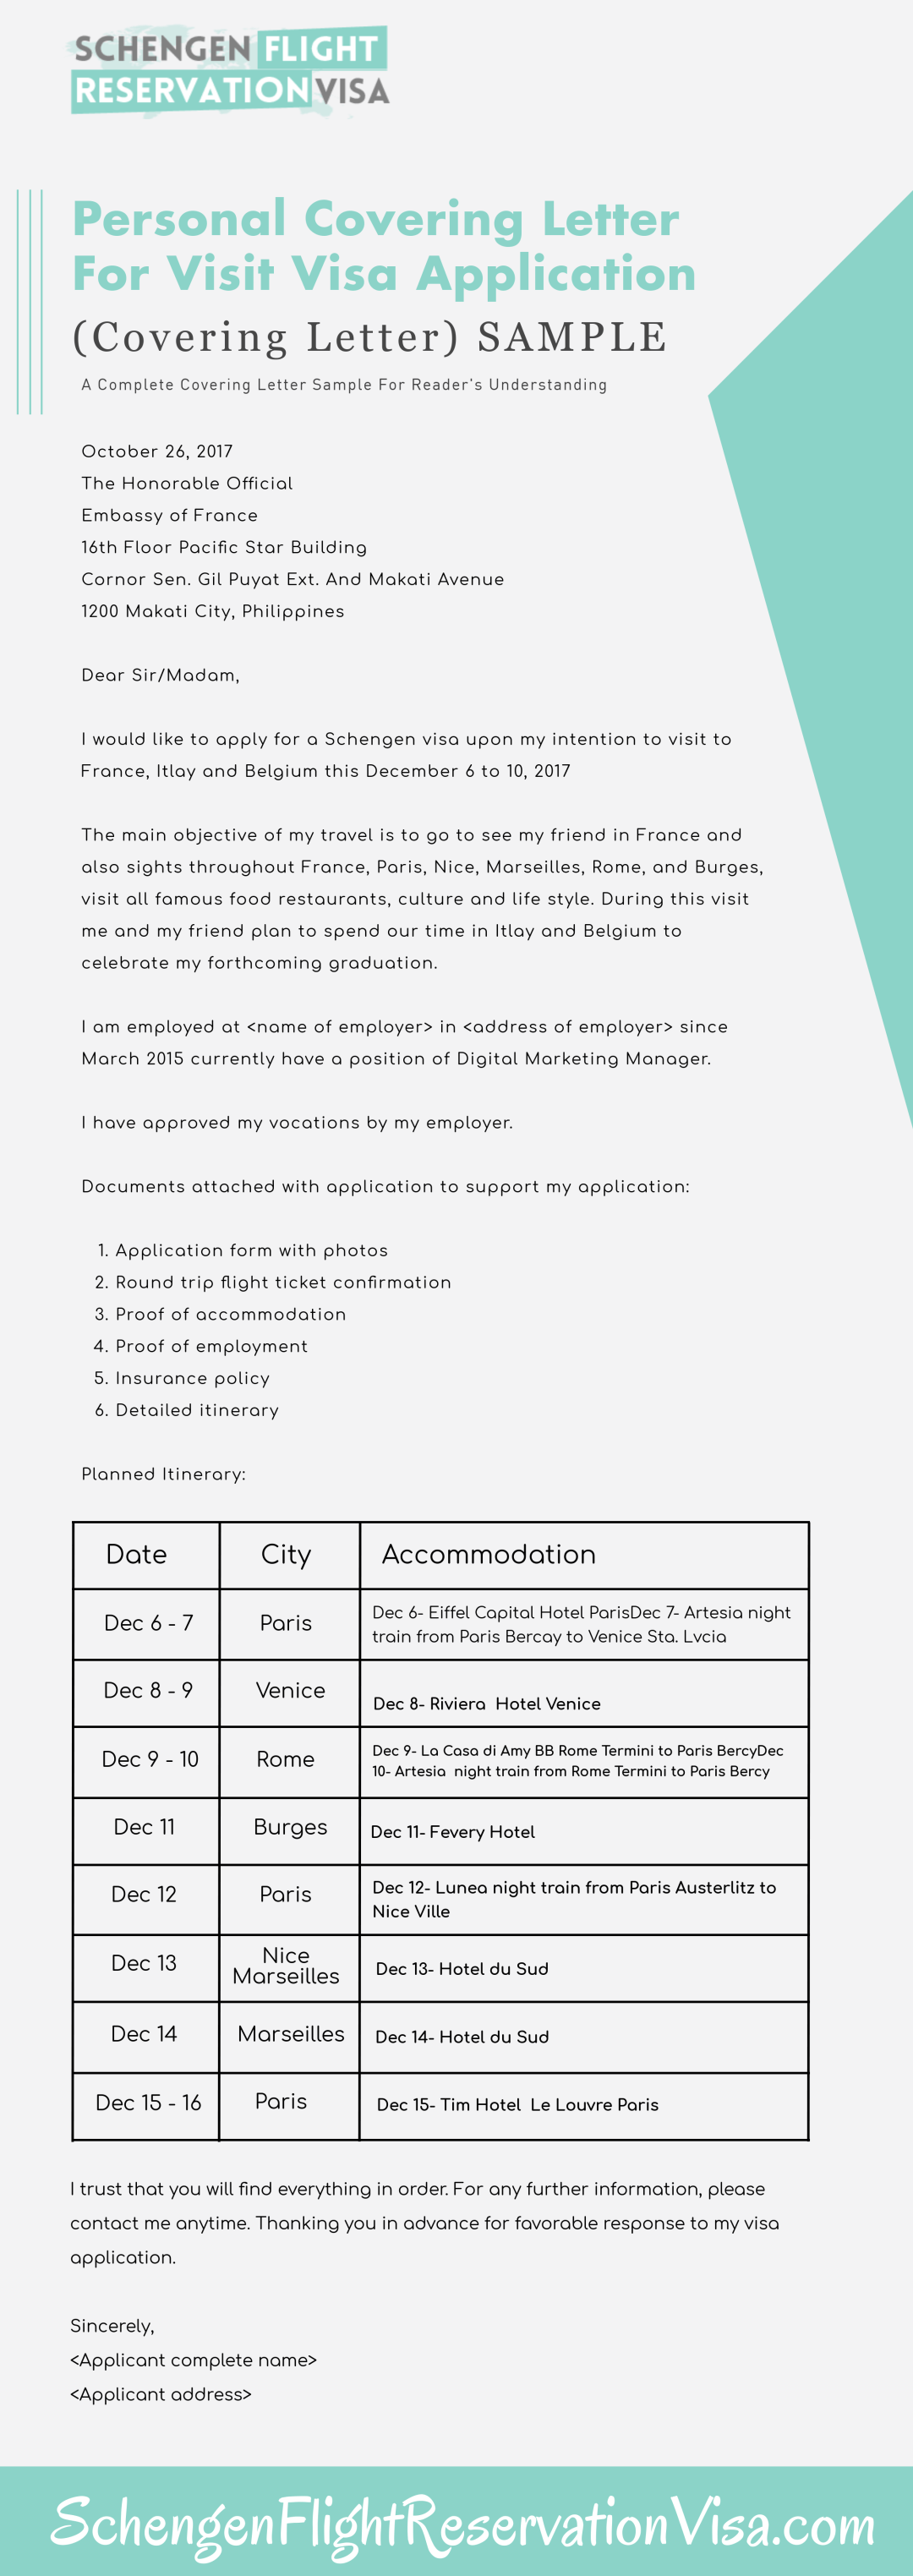 Personal covering letter guide and samples for visa application process personal covering letter samples personal covering letter for visit visa application thecheapjerseys Image collections